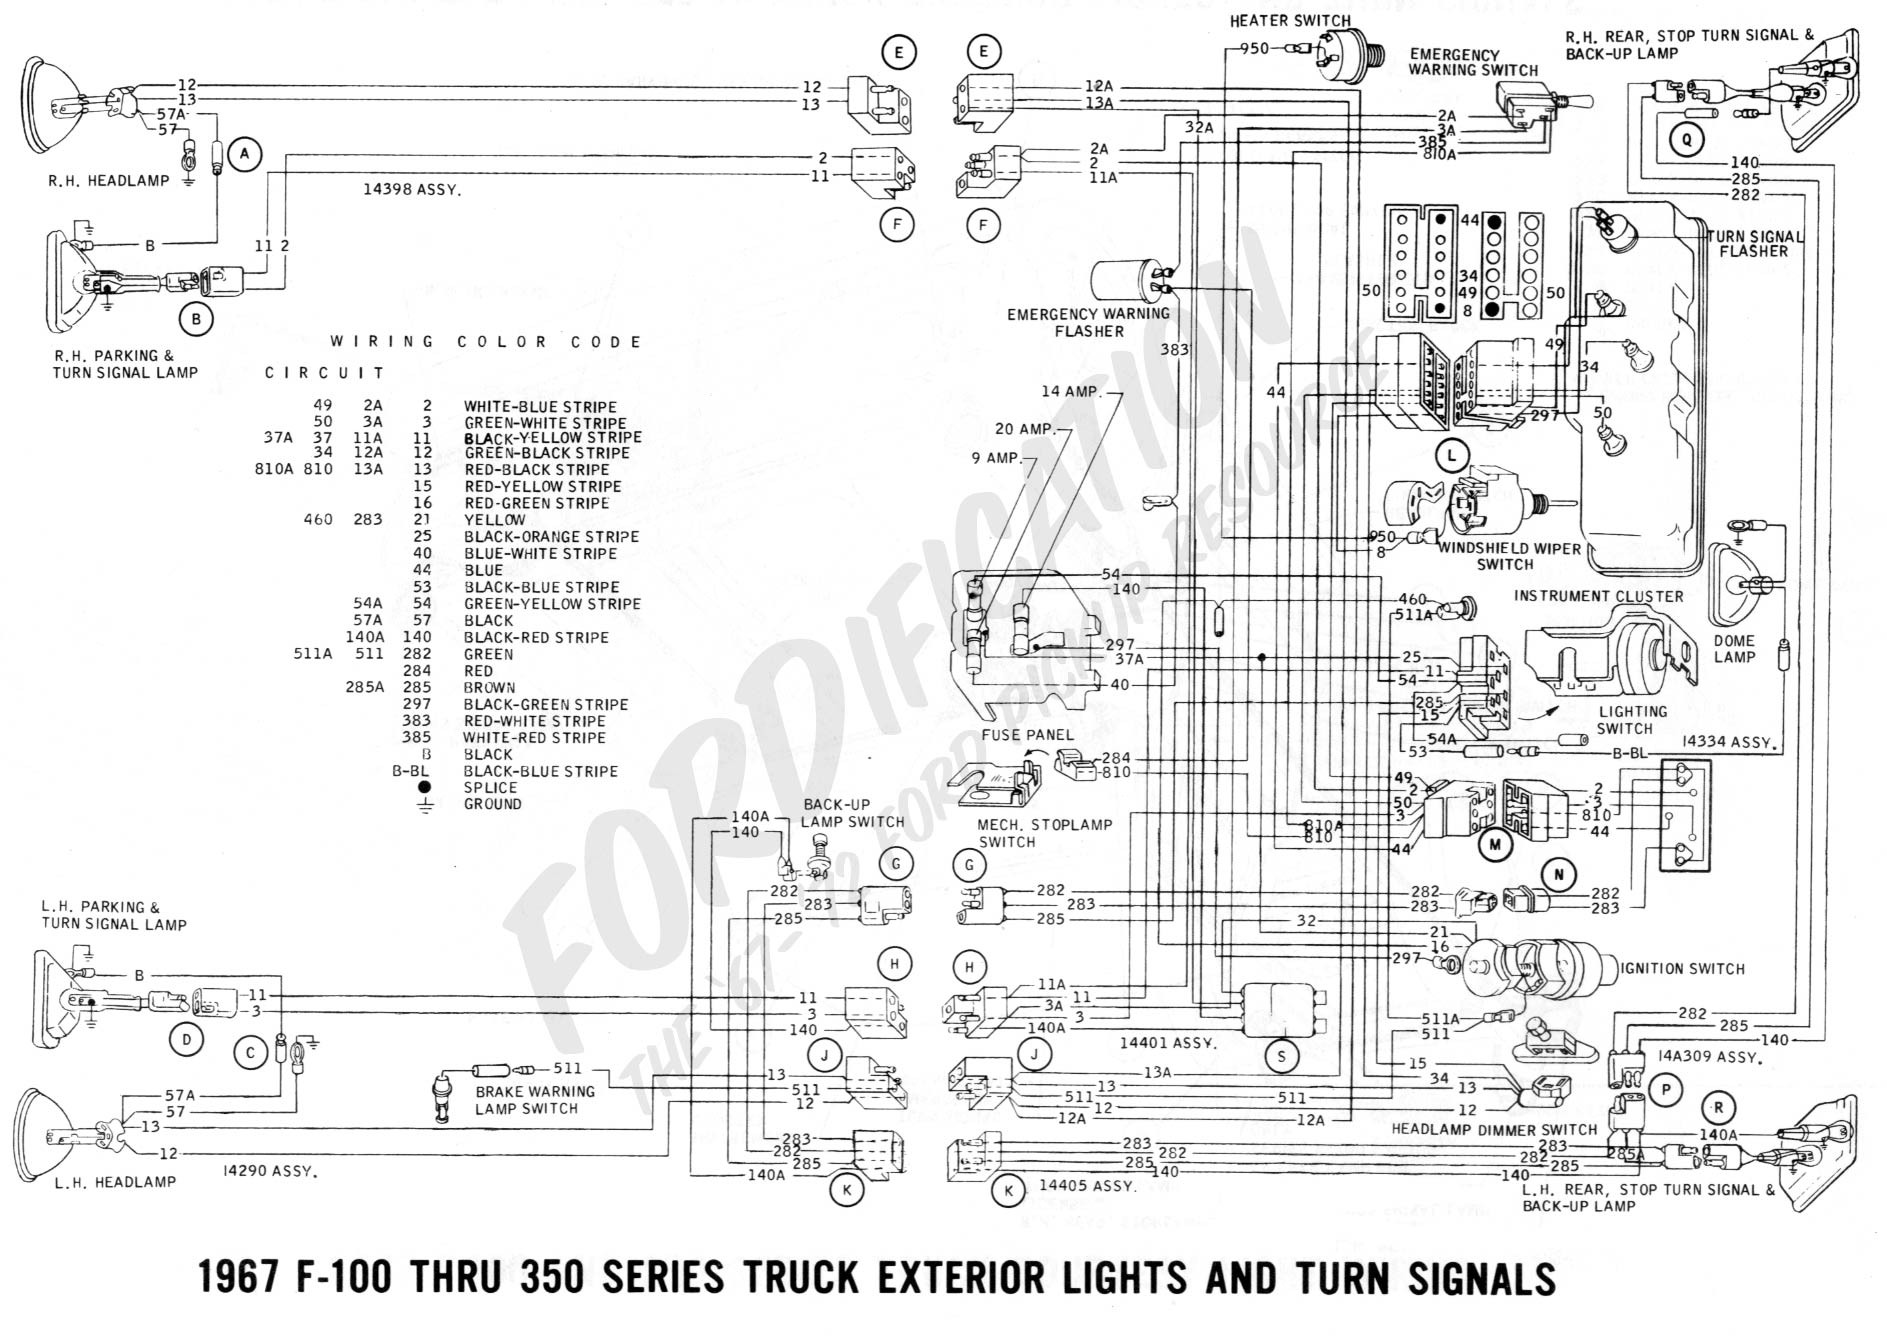 1958 Thunderbird Wiring Diagram - Owner Manual & Wiring Diagram on 1957 chevy truck wiring diagram, 1955 chevy wiring diagram, 1957 chevy fuse box diagram,